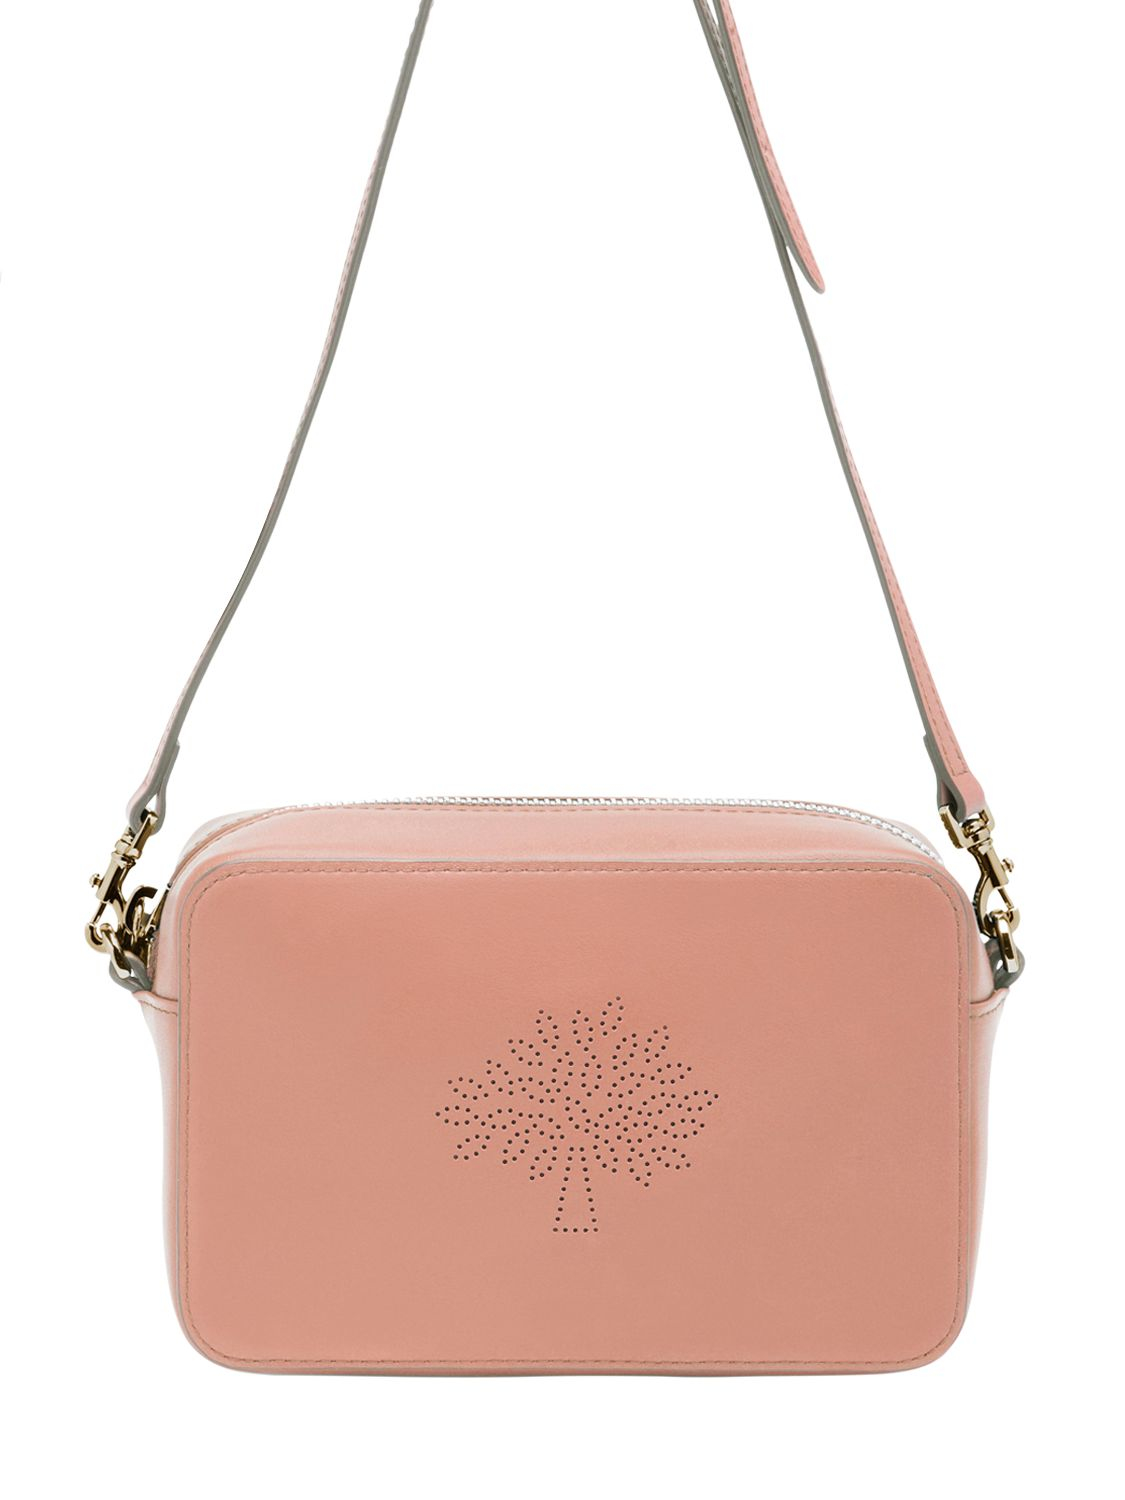 new style womens bags women mulberry 2a030 7390b  promo code for lyst  mulberry blossom perforated nappa shoulder bag in pink fc306 b6c57 2c727424ca9e2